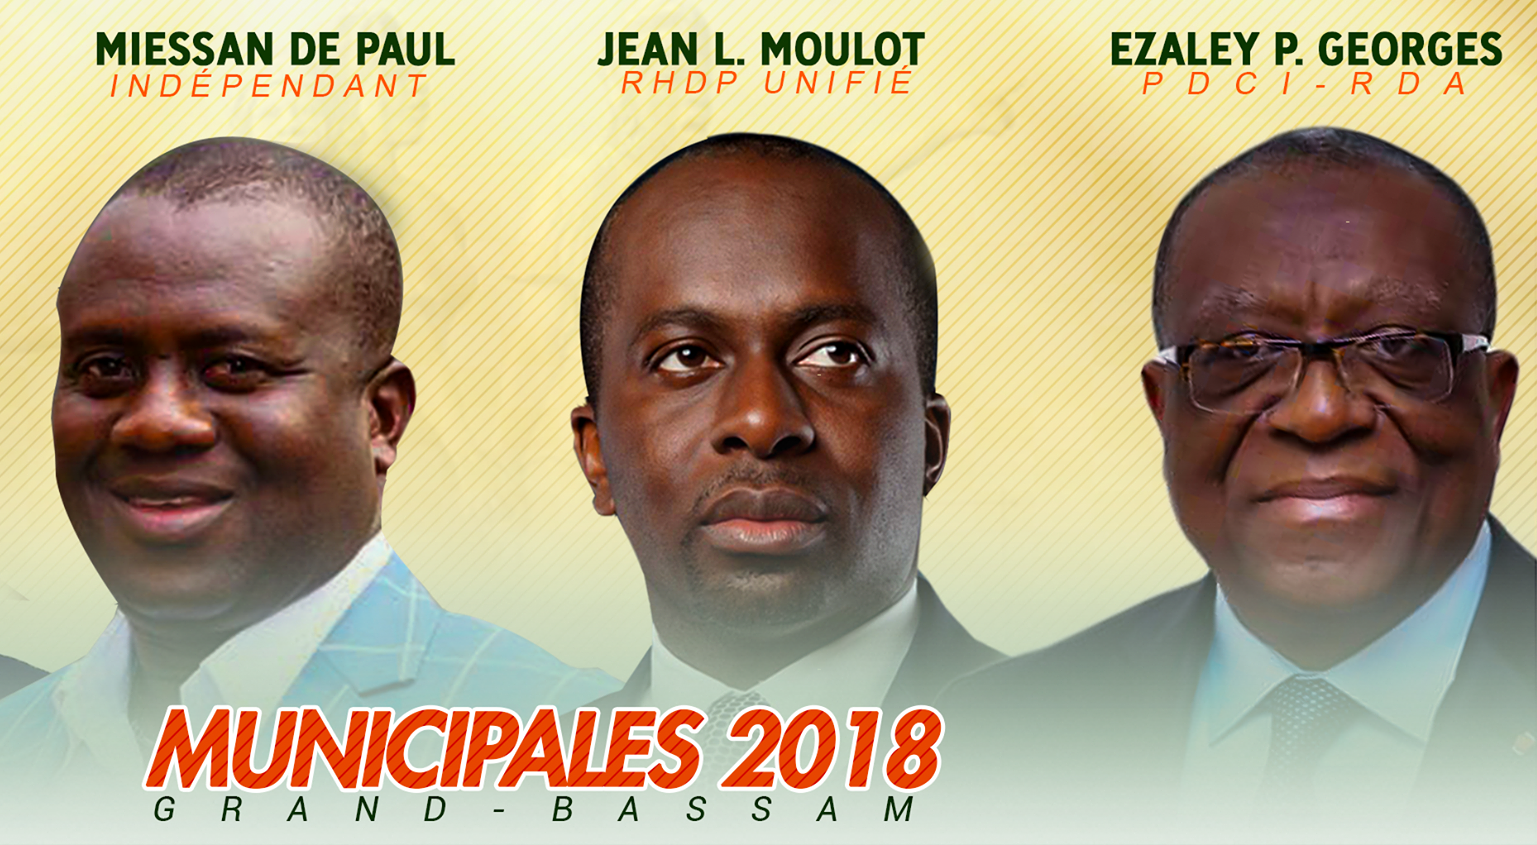 election municipale partielle,grand bassam,George Philippe Ezaley,Jean Louis Moulot,Vincent de Paul Miessan